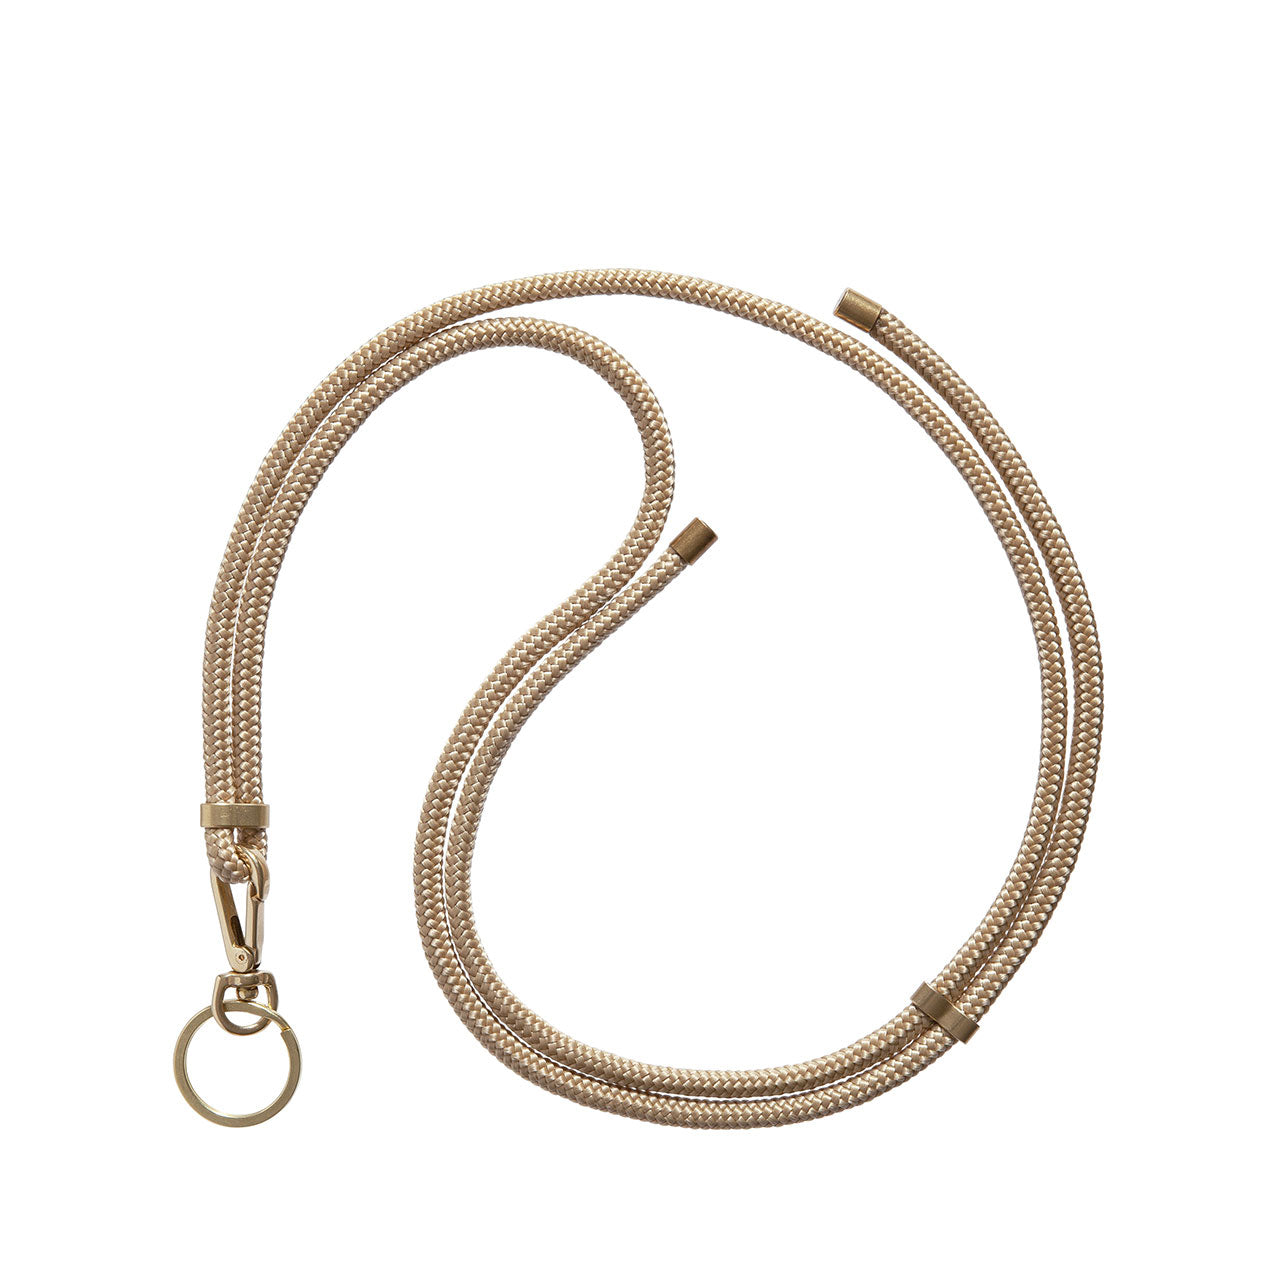 KNOK Key Holder Lanyard in gold